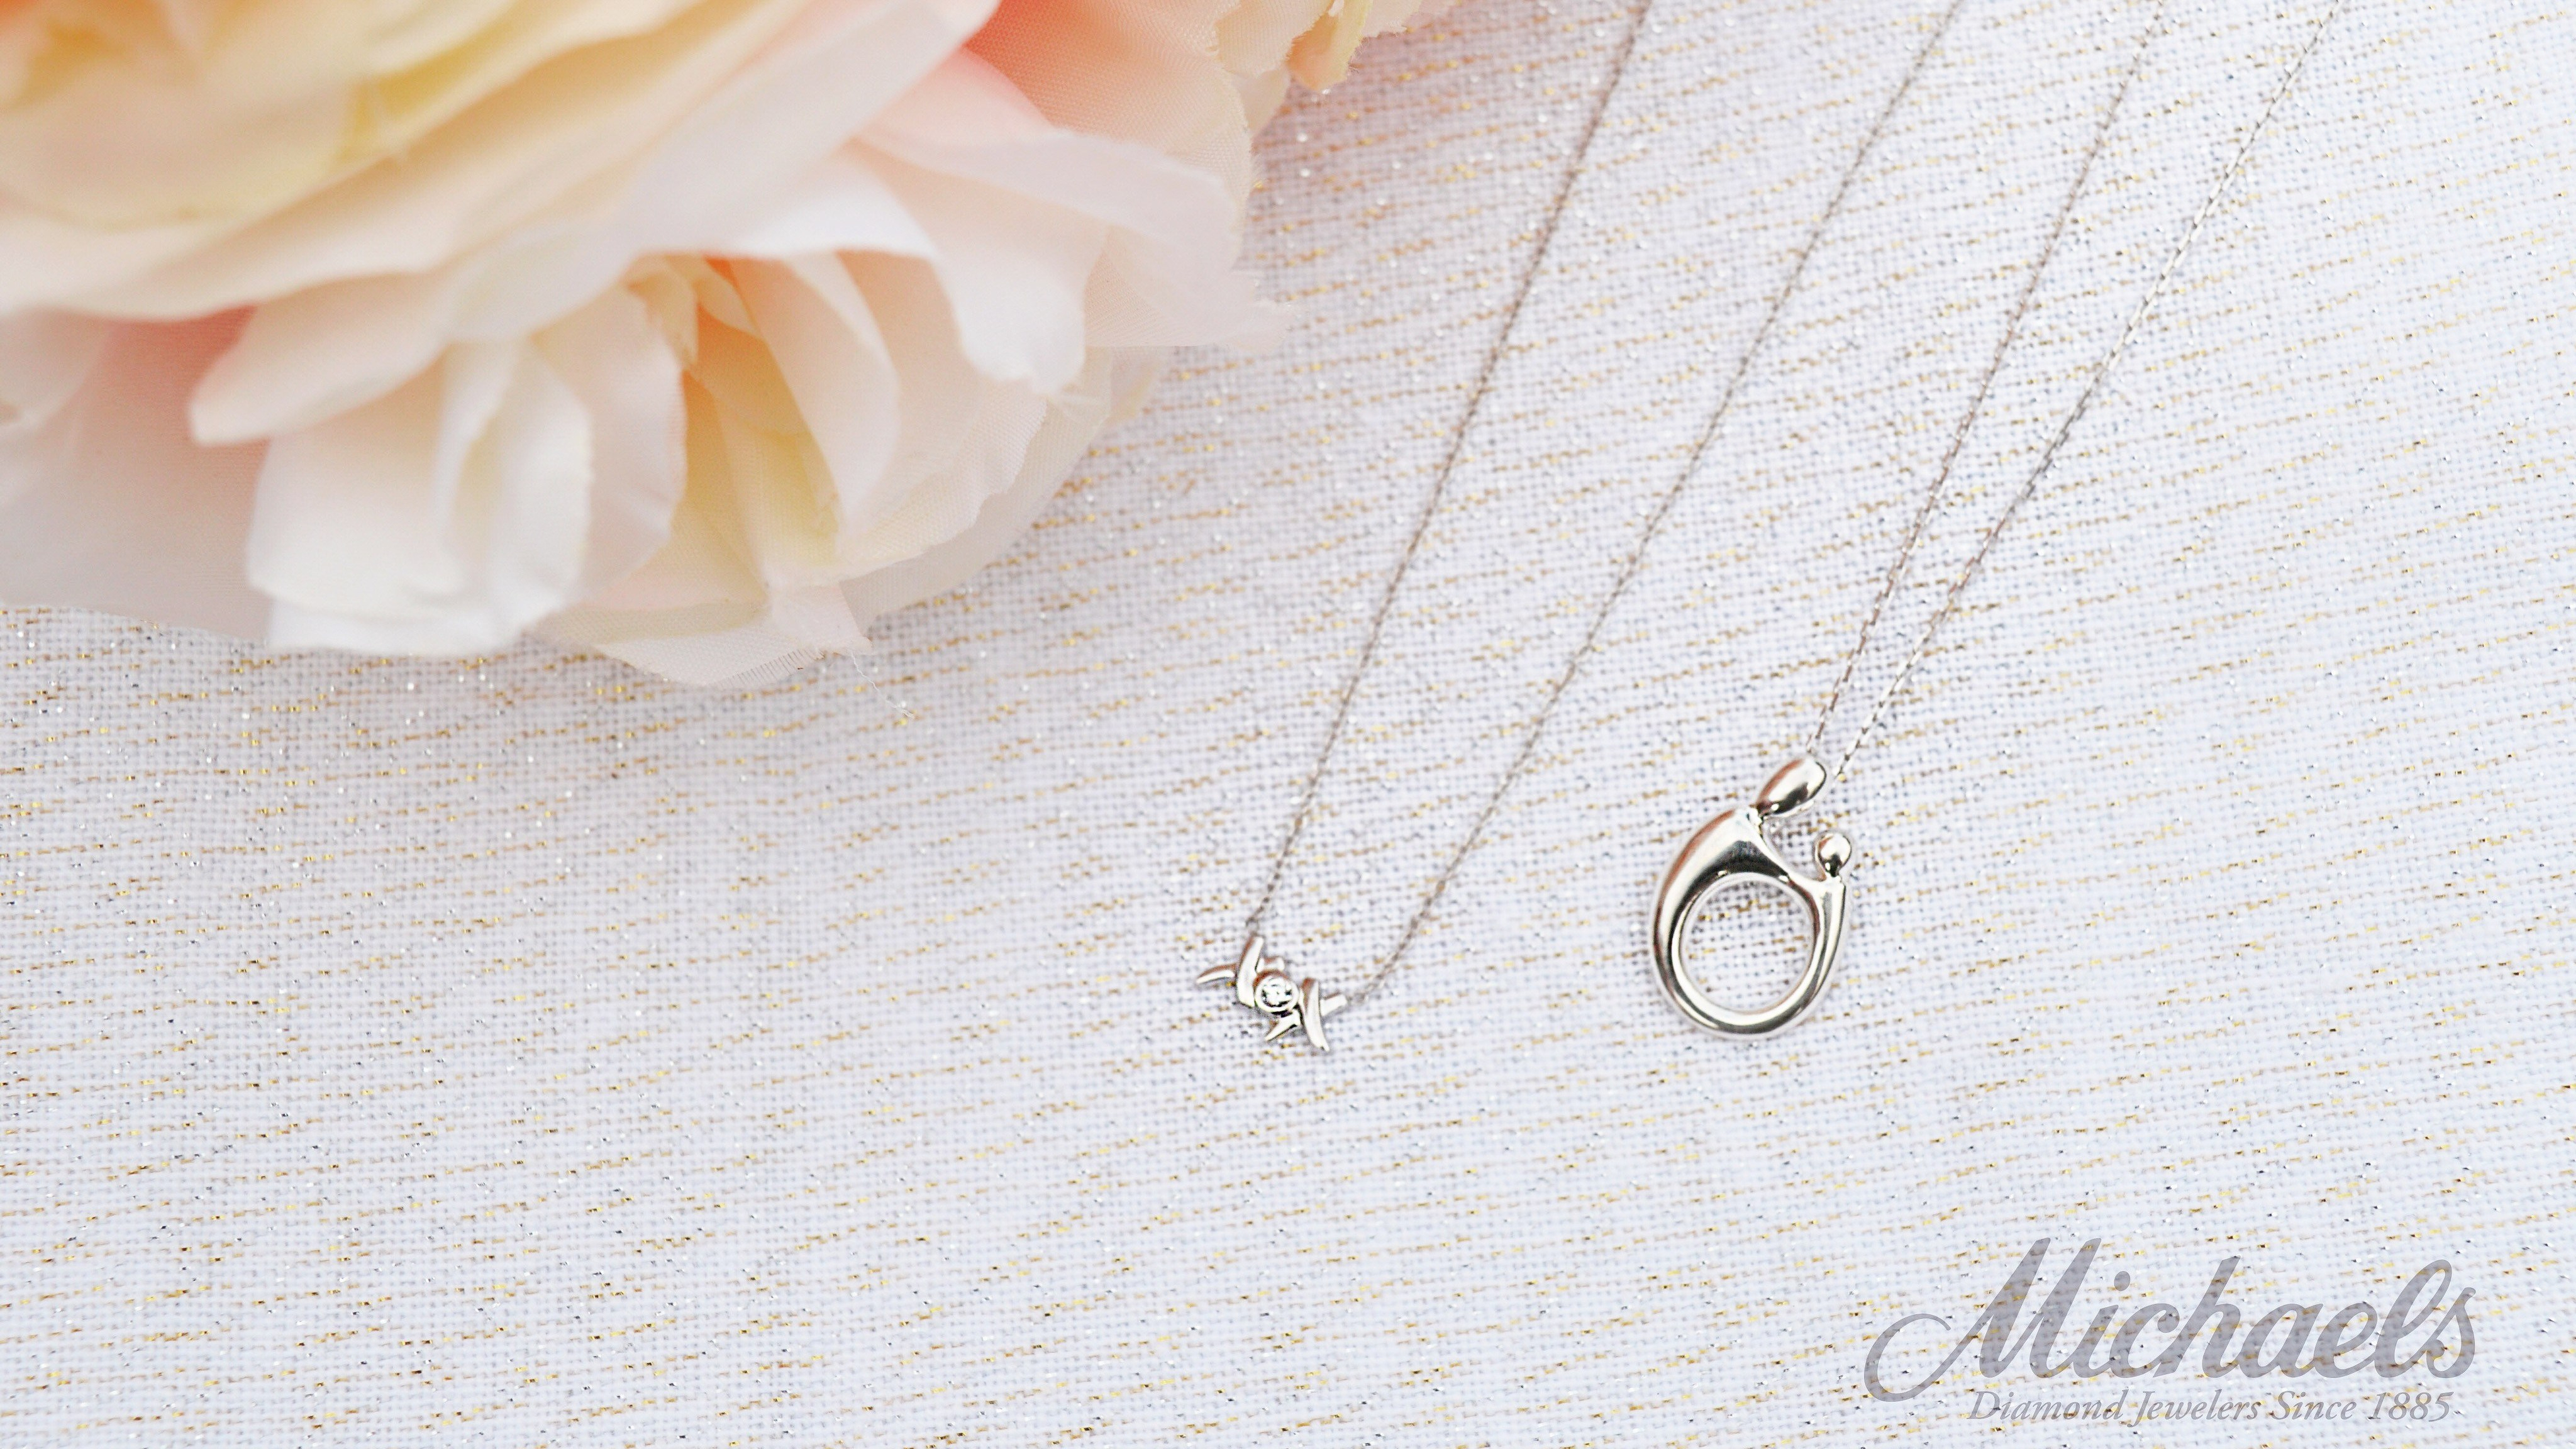 mothers-necklaces-michaelsjewelers-e1522776588828.jpg